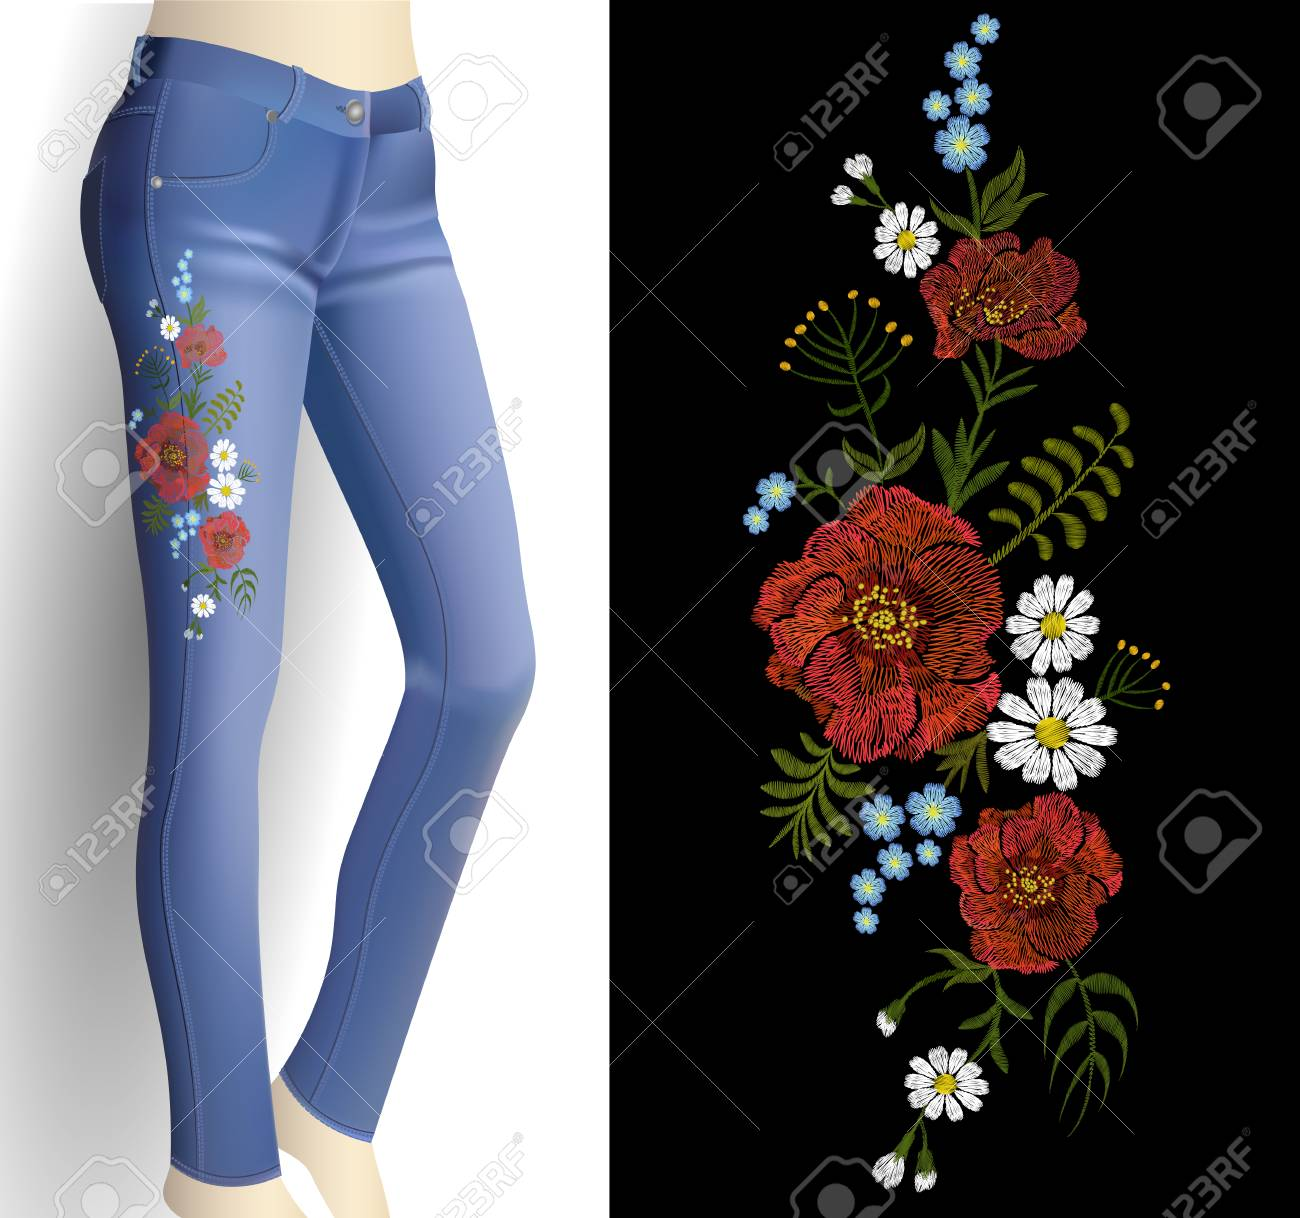 Flower embroidery on woman blue jeans 3d mockup  Fashion outfit